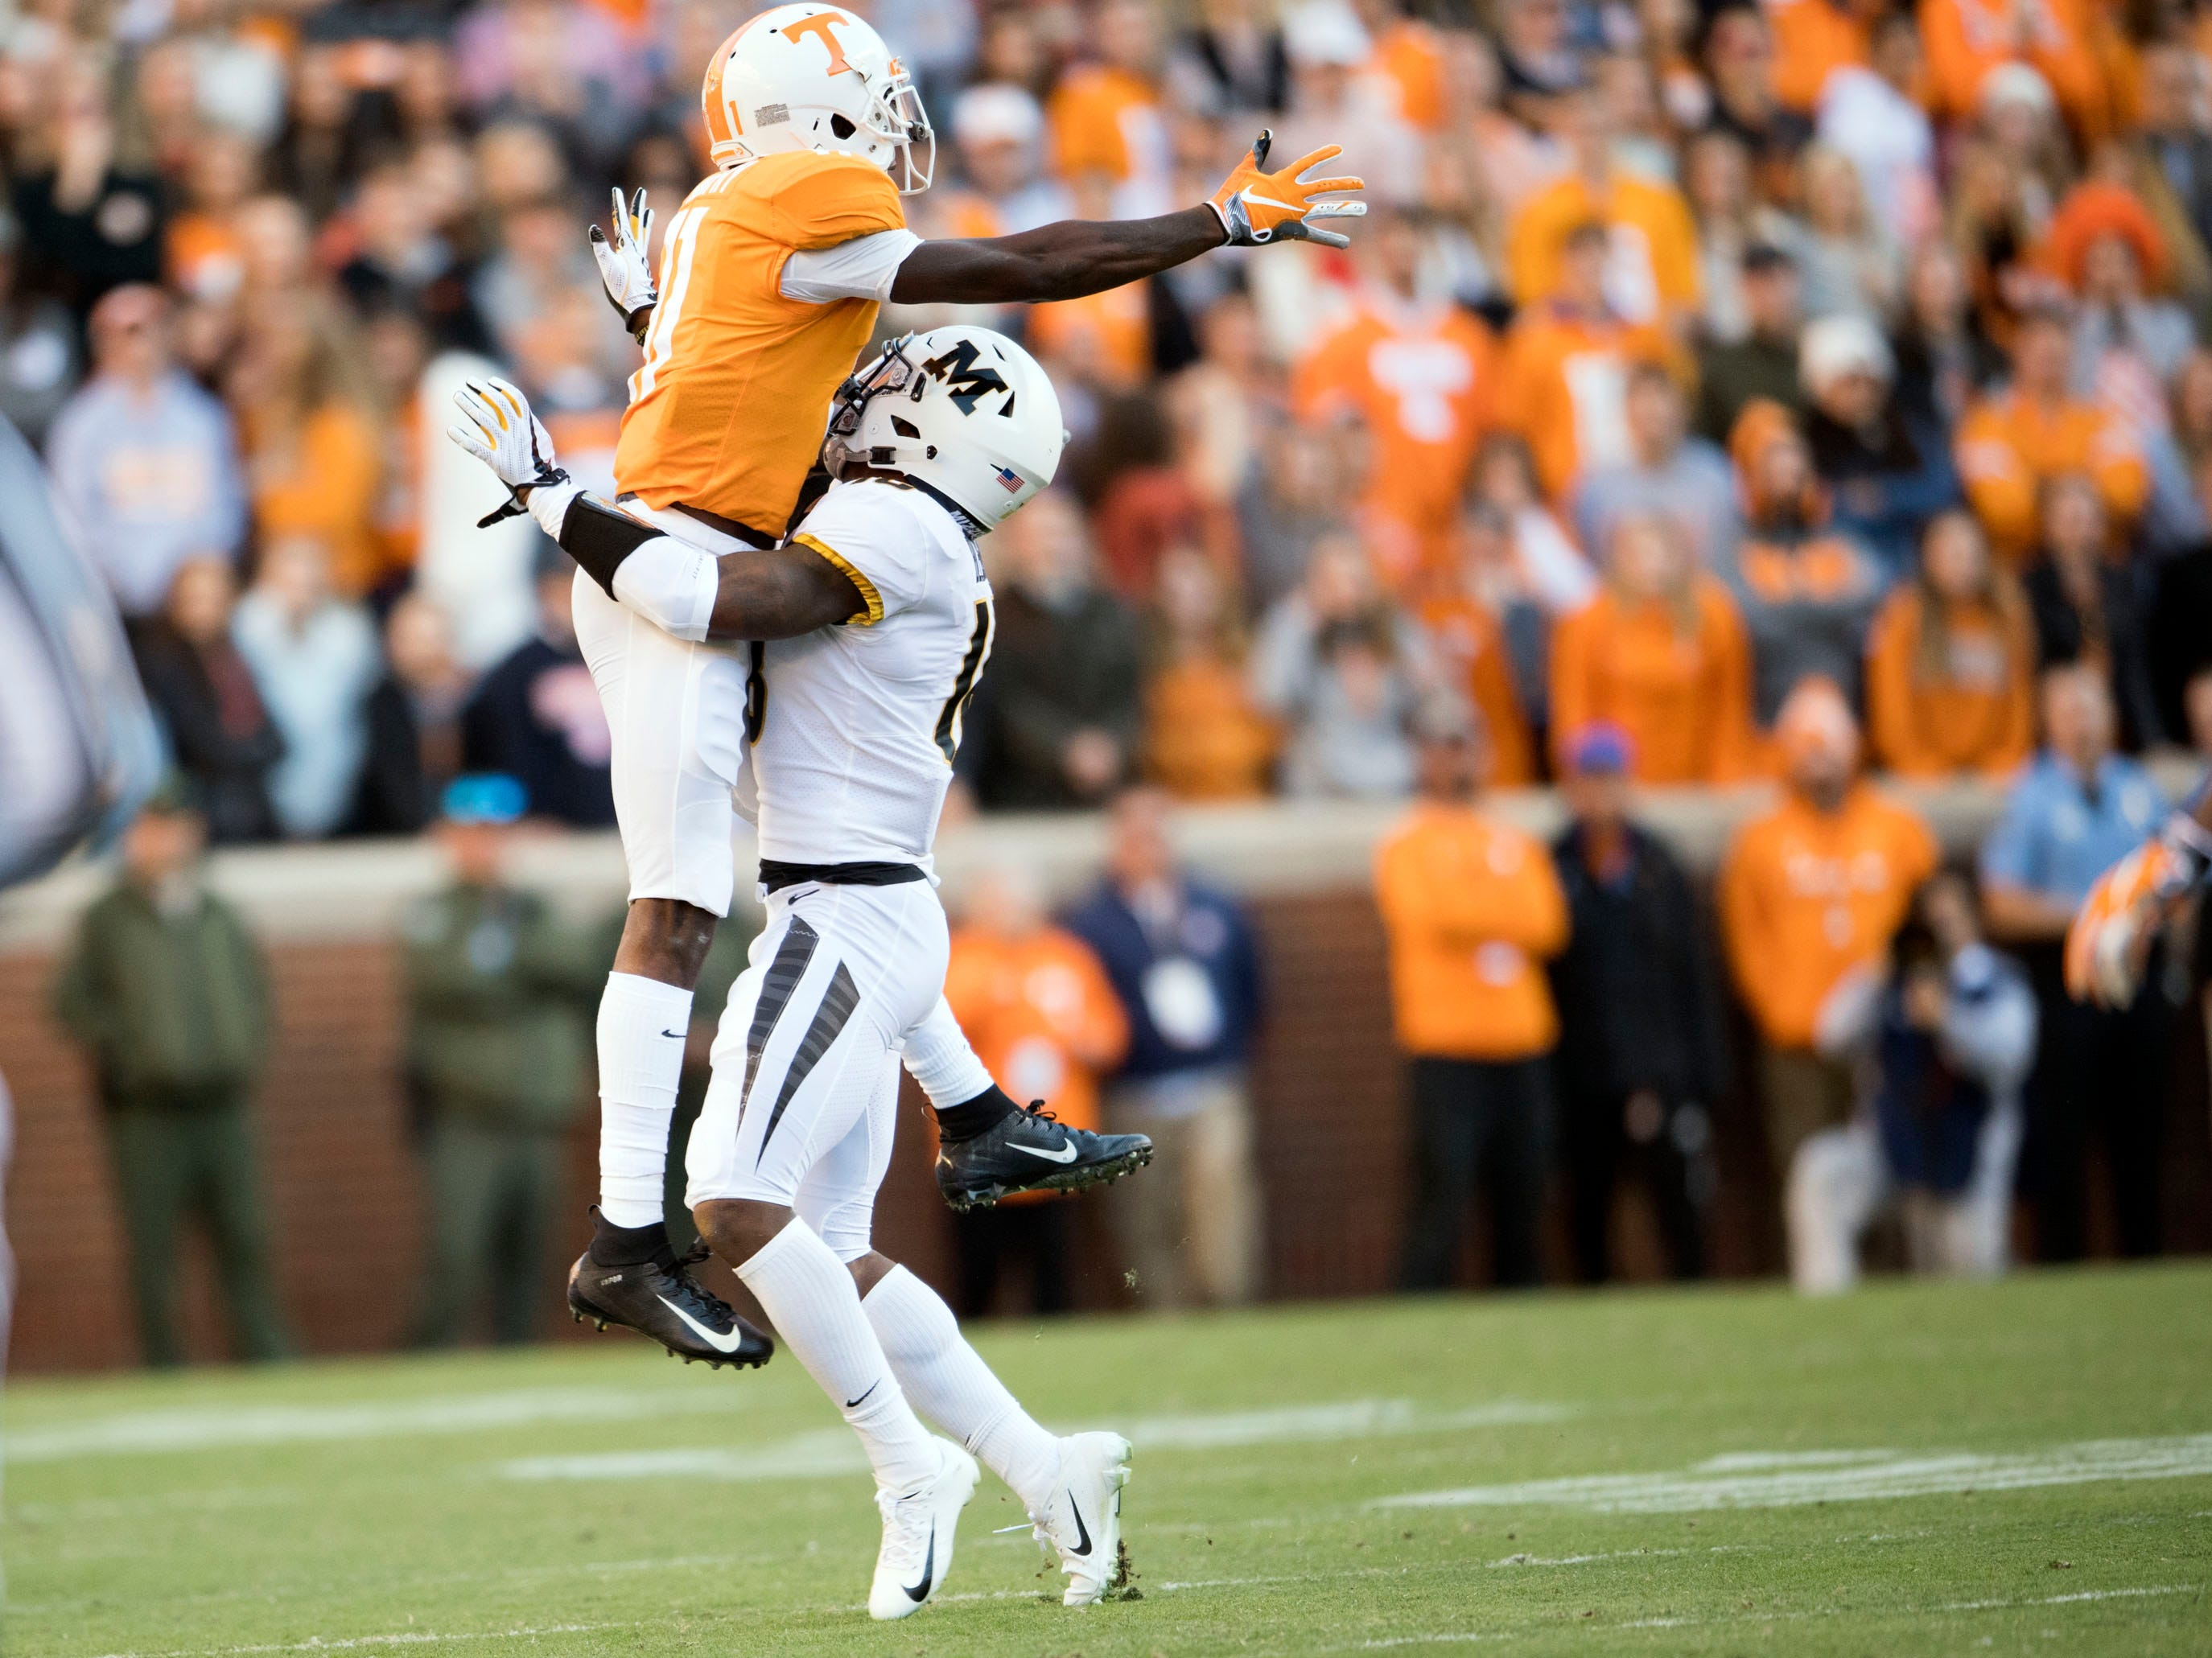 Tennessee wide receiver Jordan Murphy (11) is defended by Missouri safety Joshuah Bledsoe (18) during a pass attempt in the Tennessee and Missouri football game on Saturday, November 17, 2018.